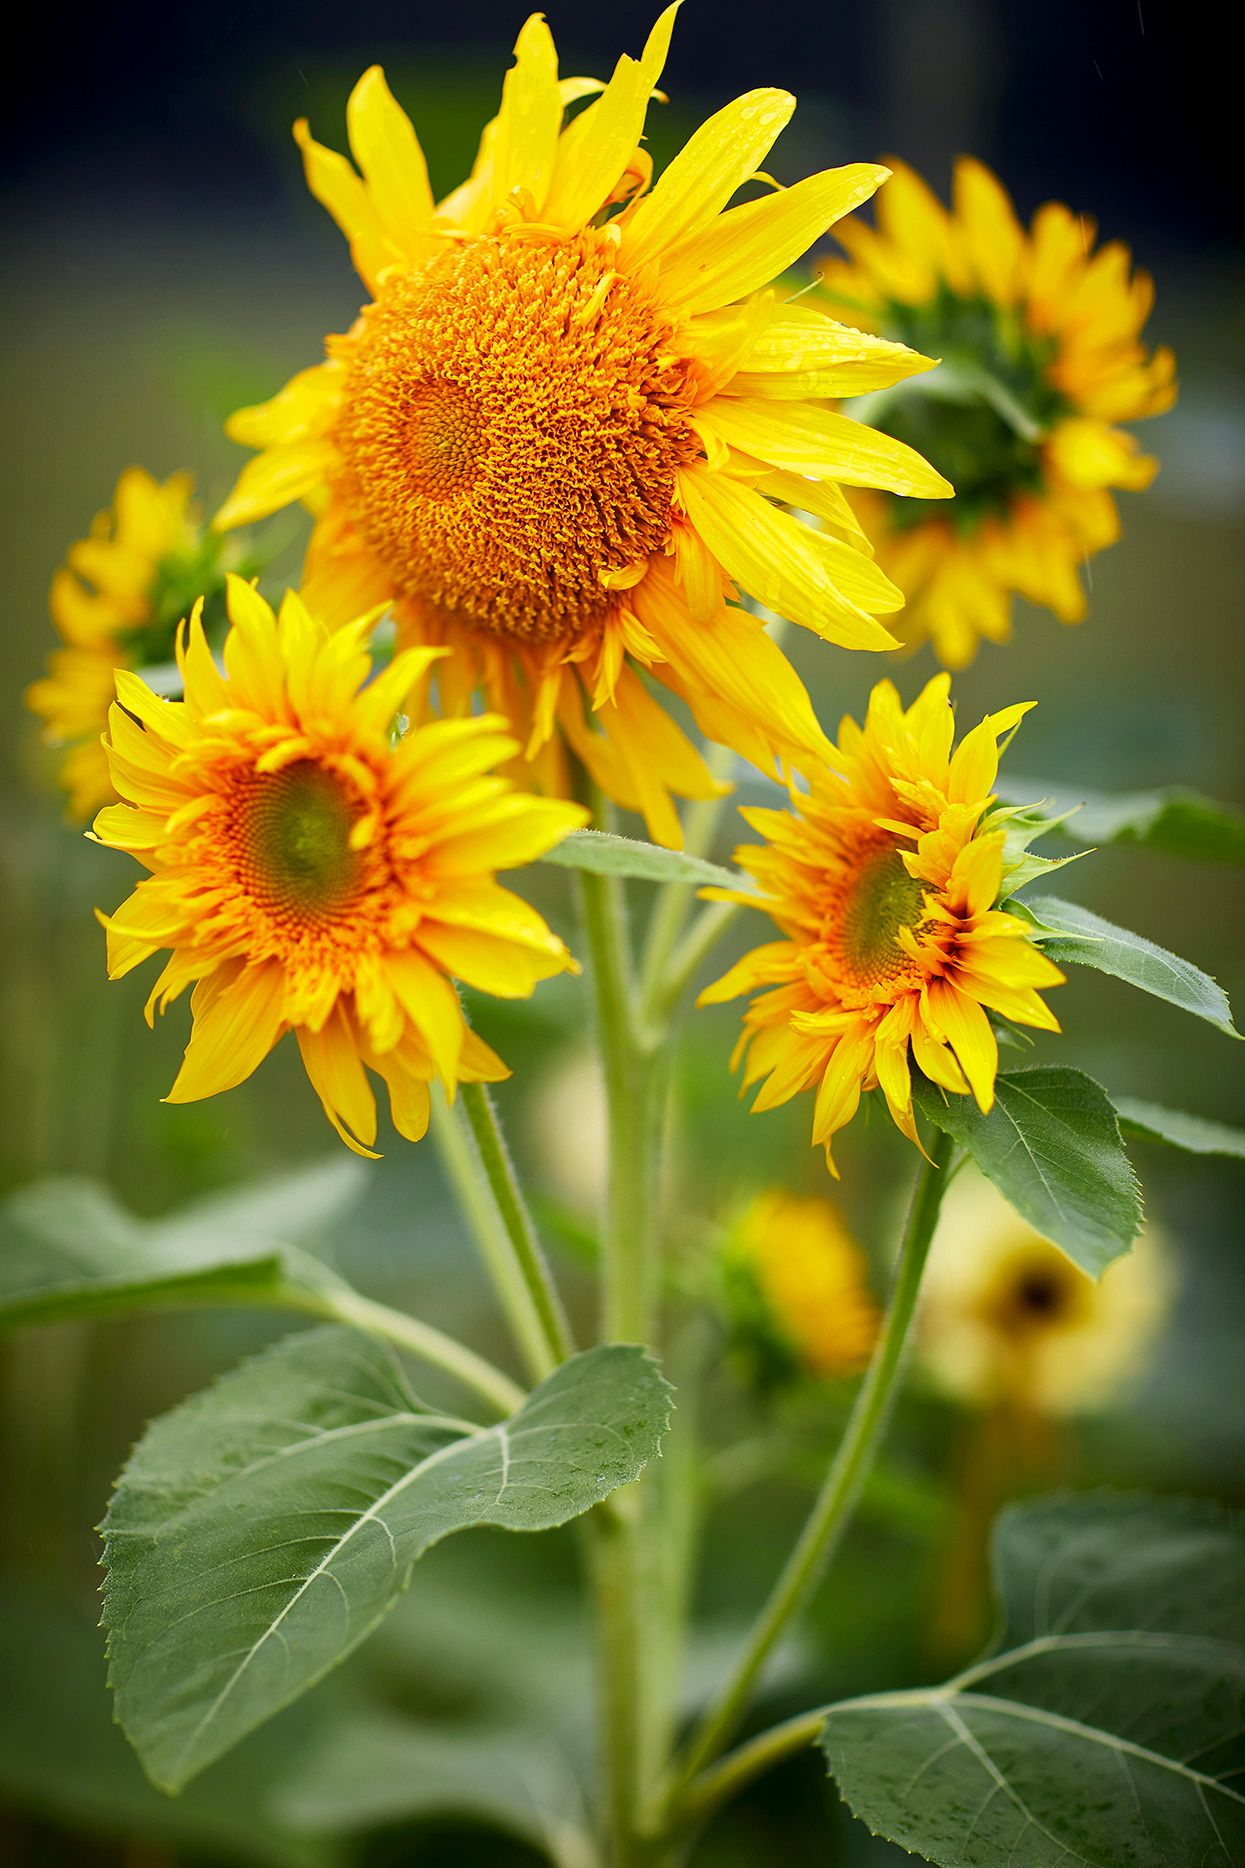 The Ultimate Guide To Growing Super Sunflowers Growing